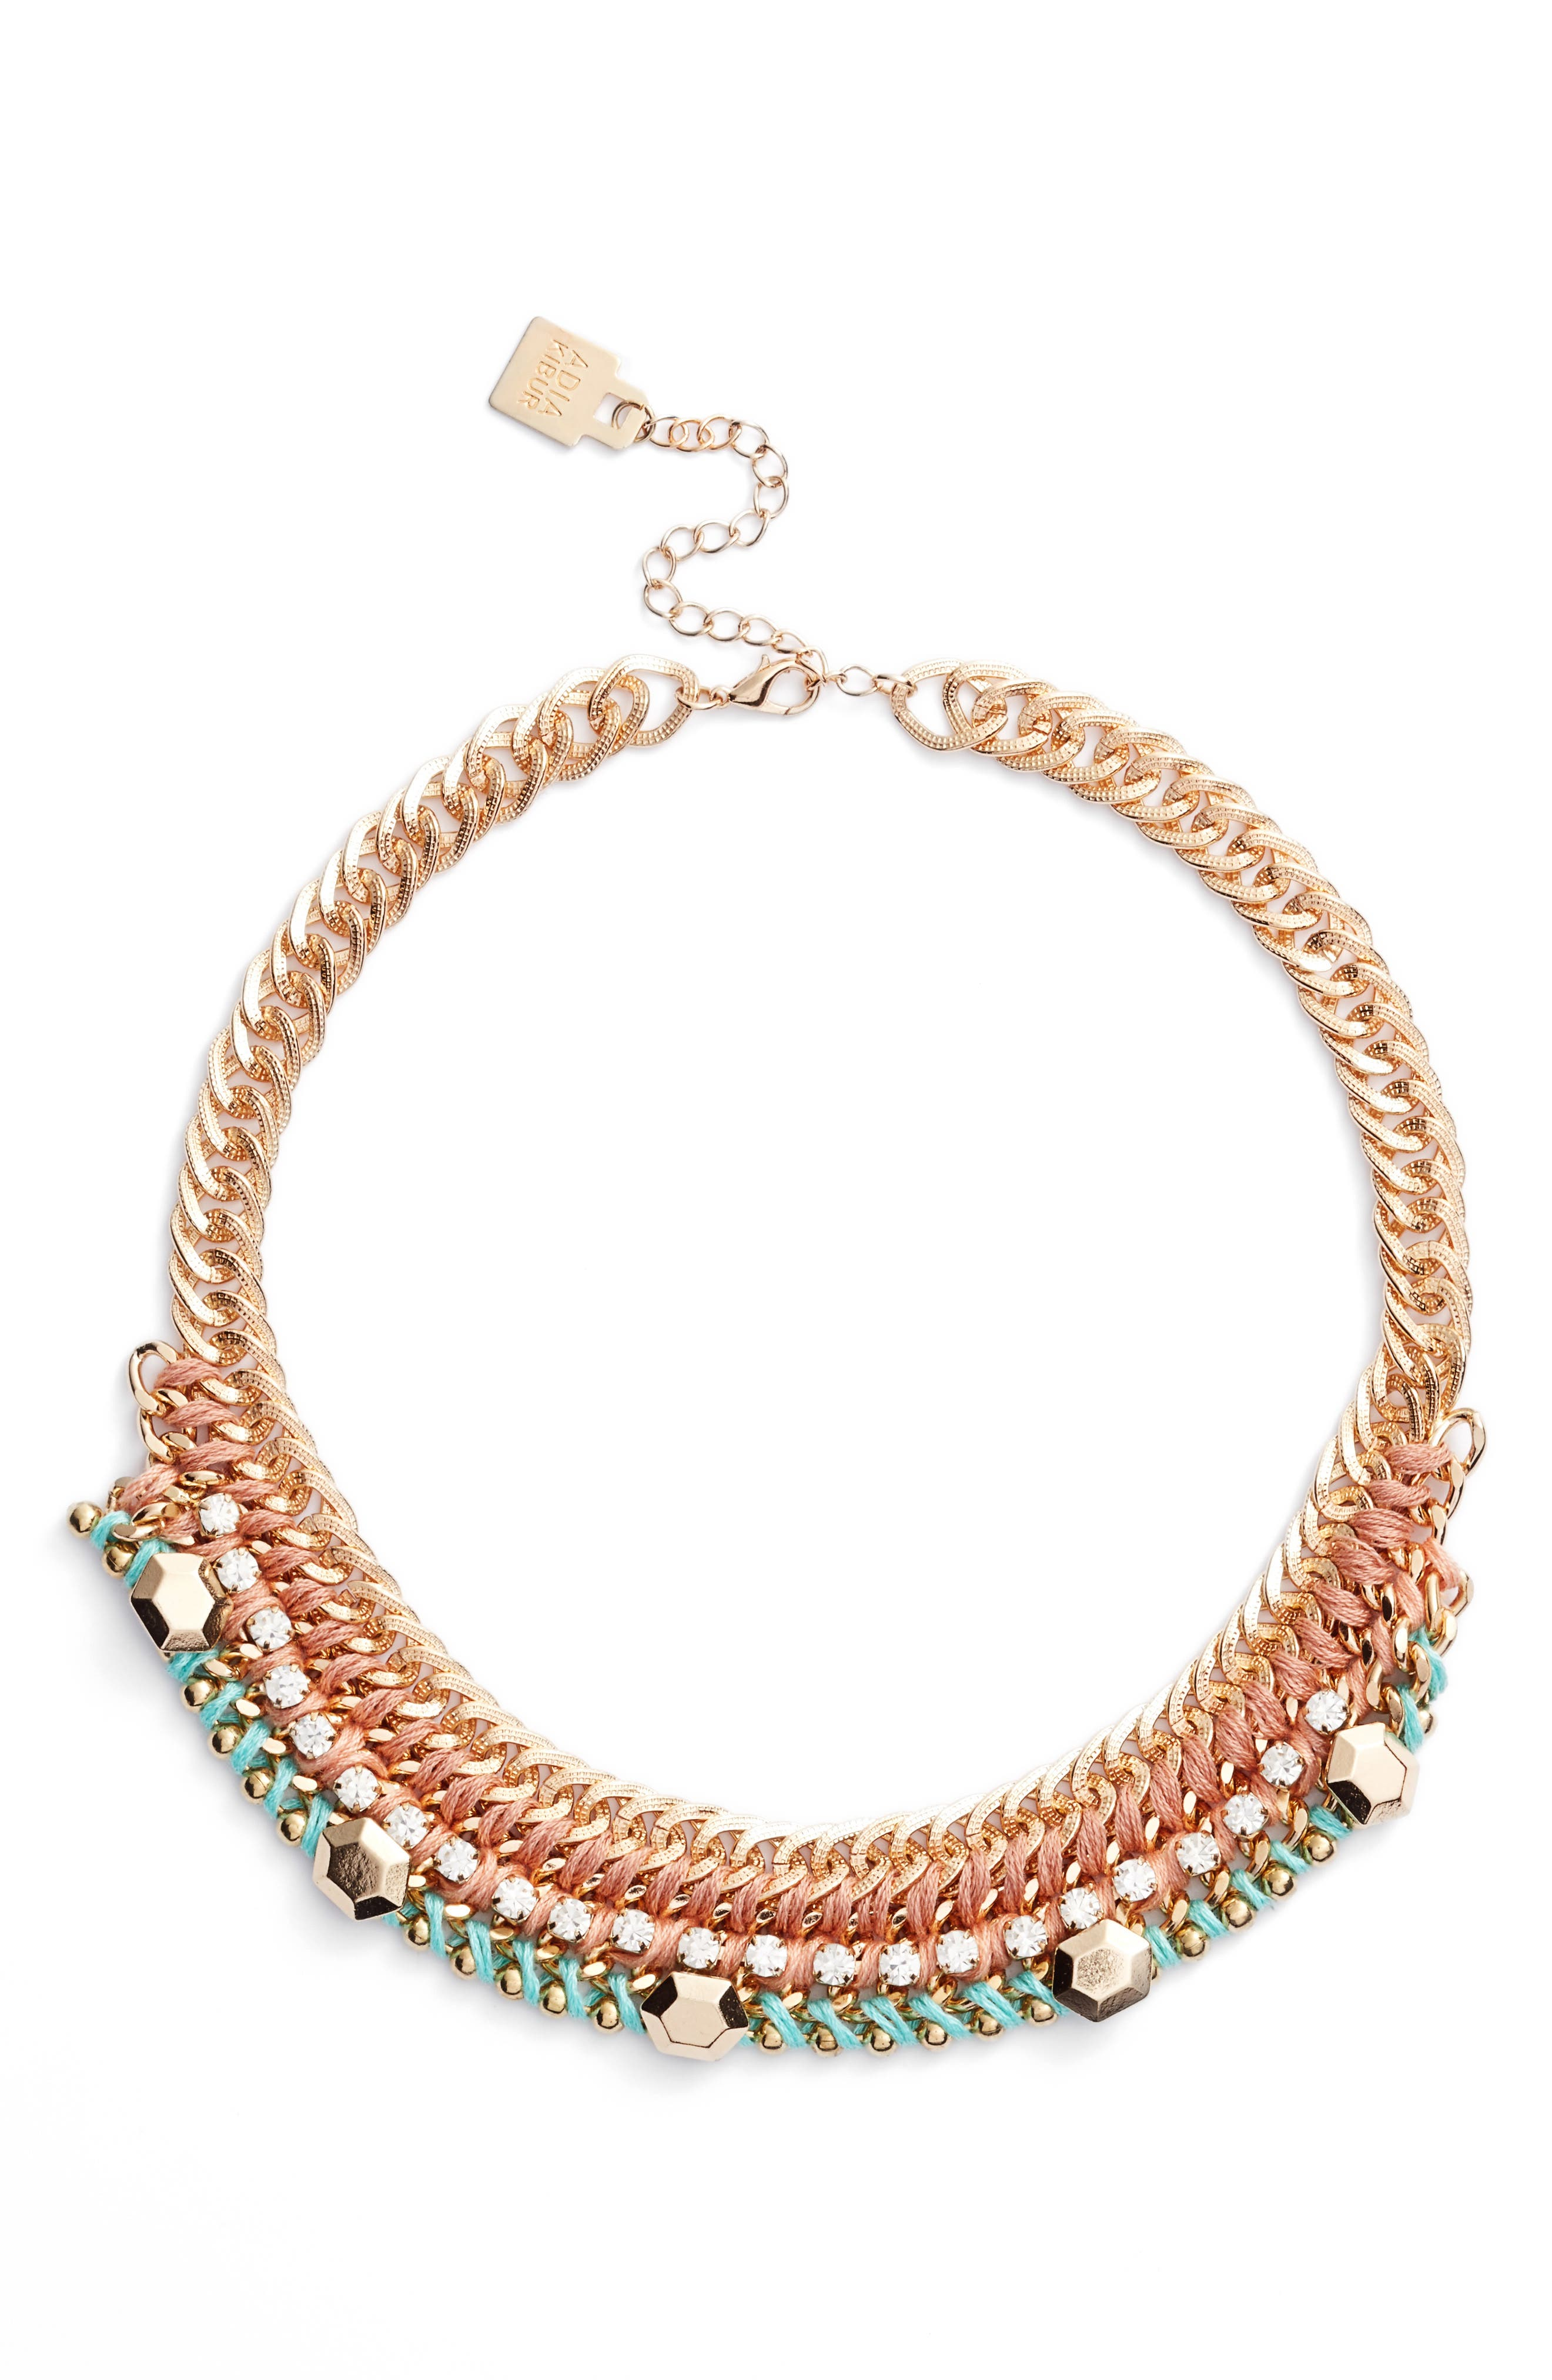 Braided Chain Necklace,                             Main thumbnail 1, color,                             Pink/ Mint